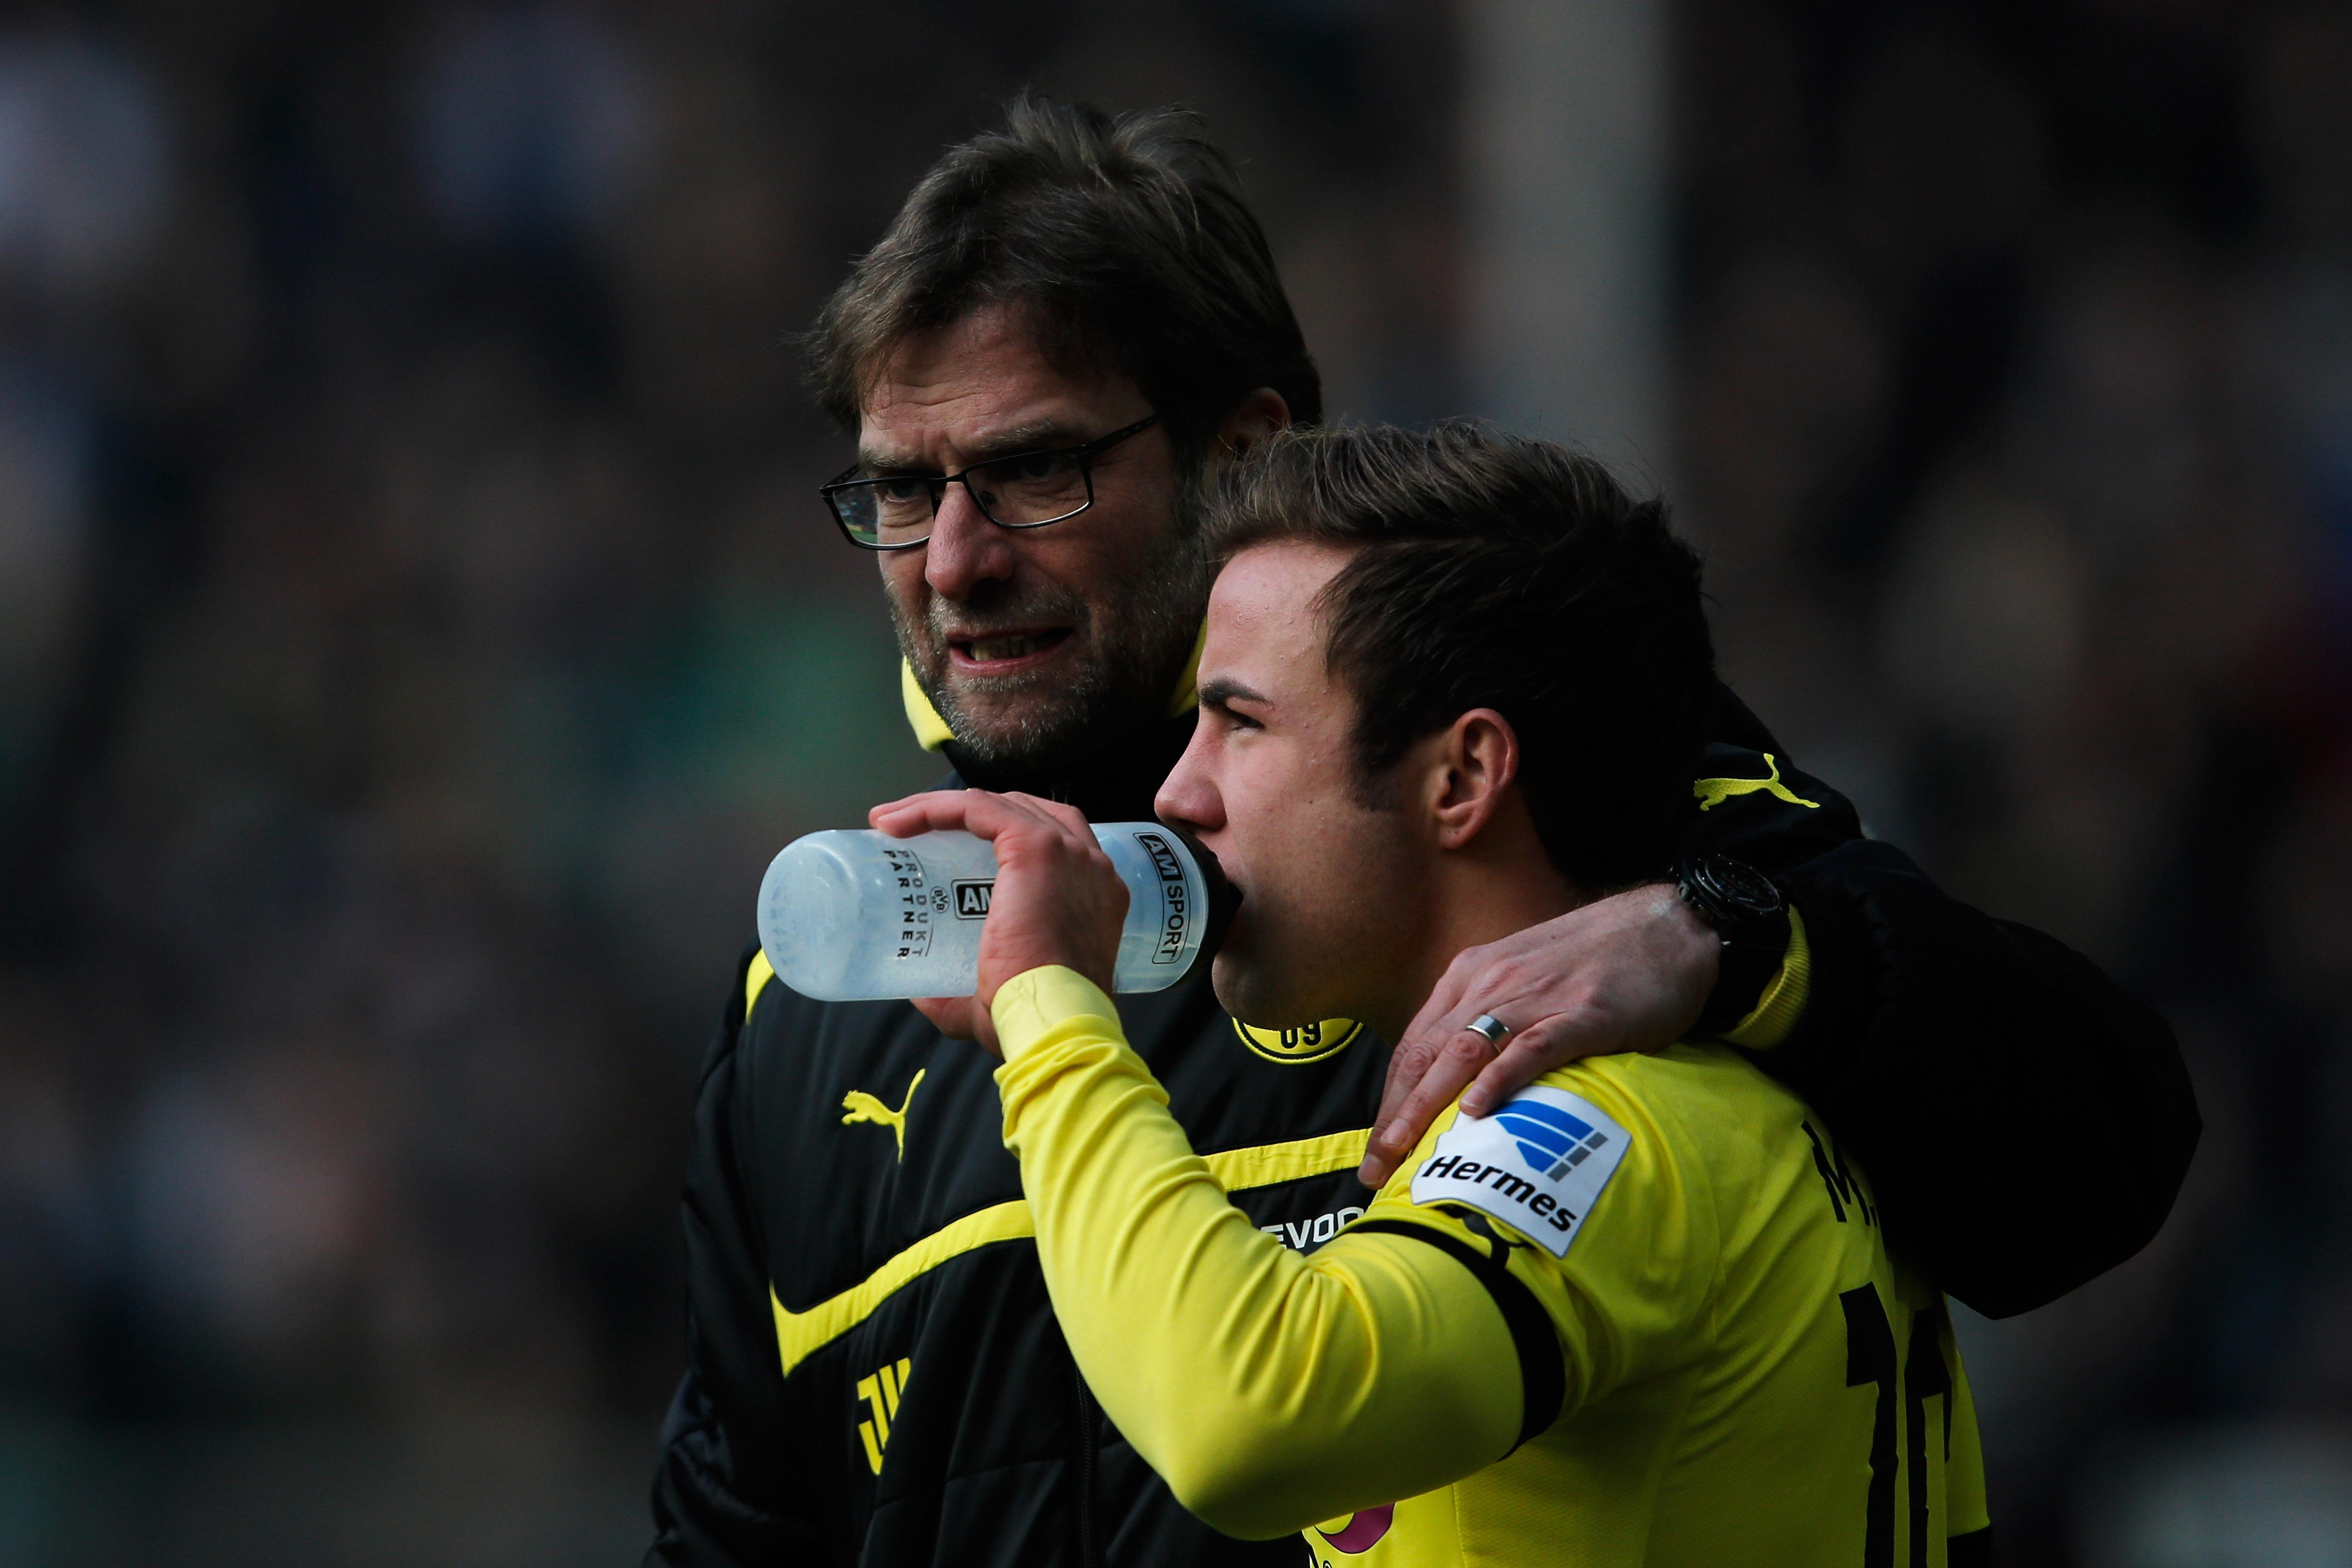 The German is responsible for BVB's recent rise in the Bundesliga